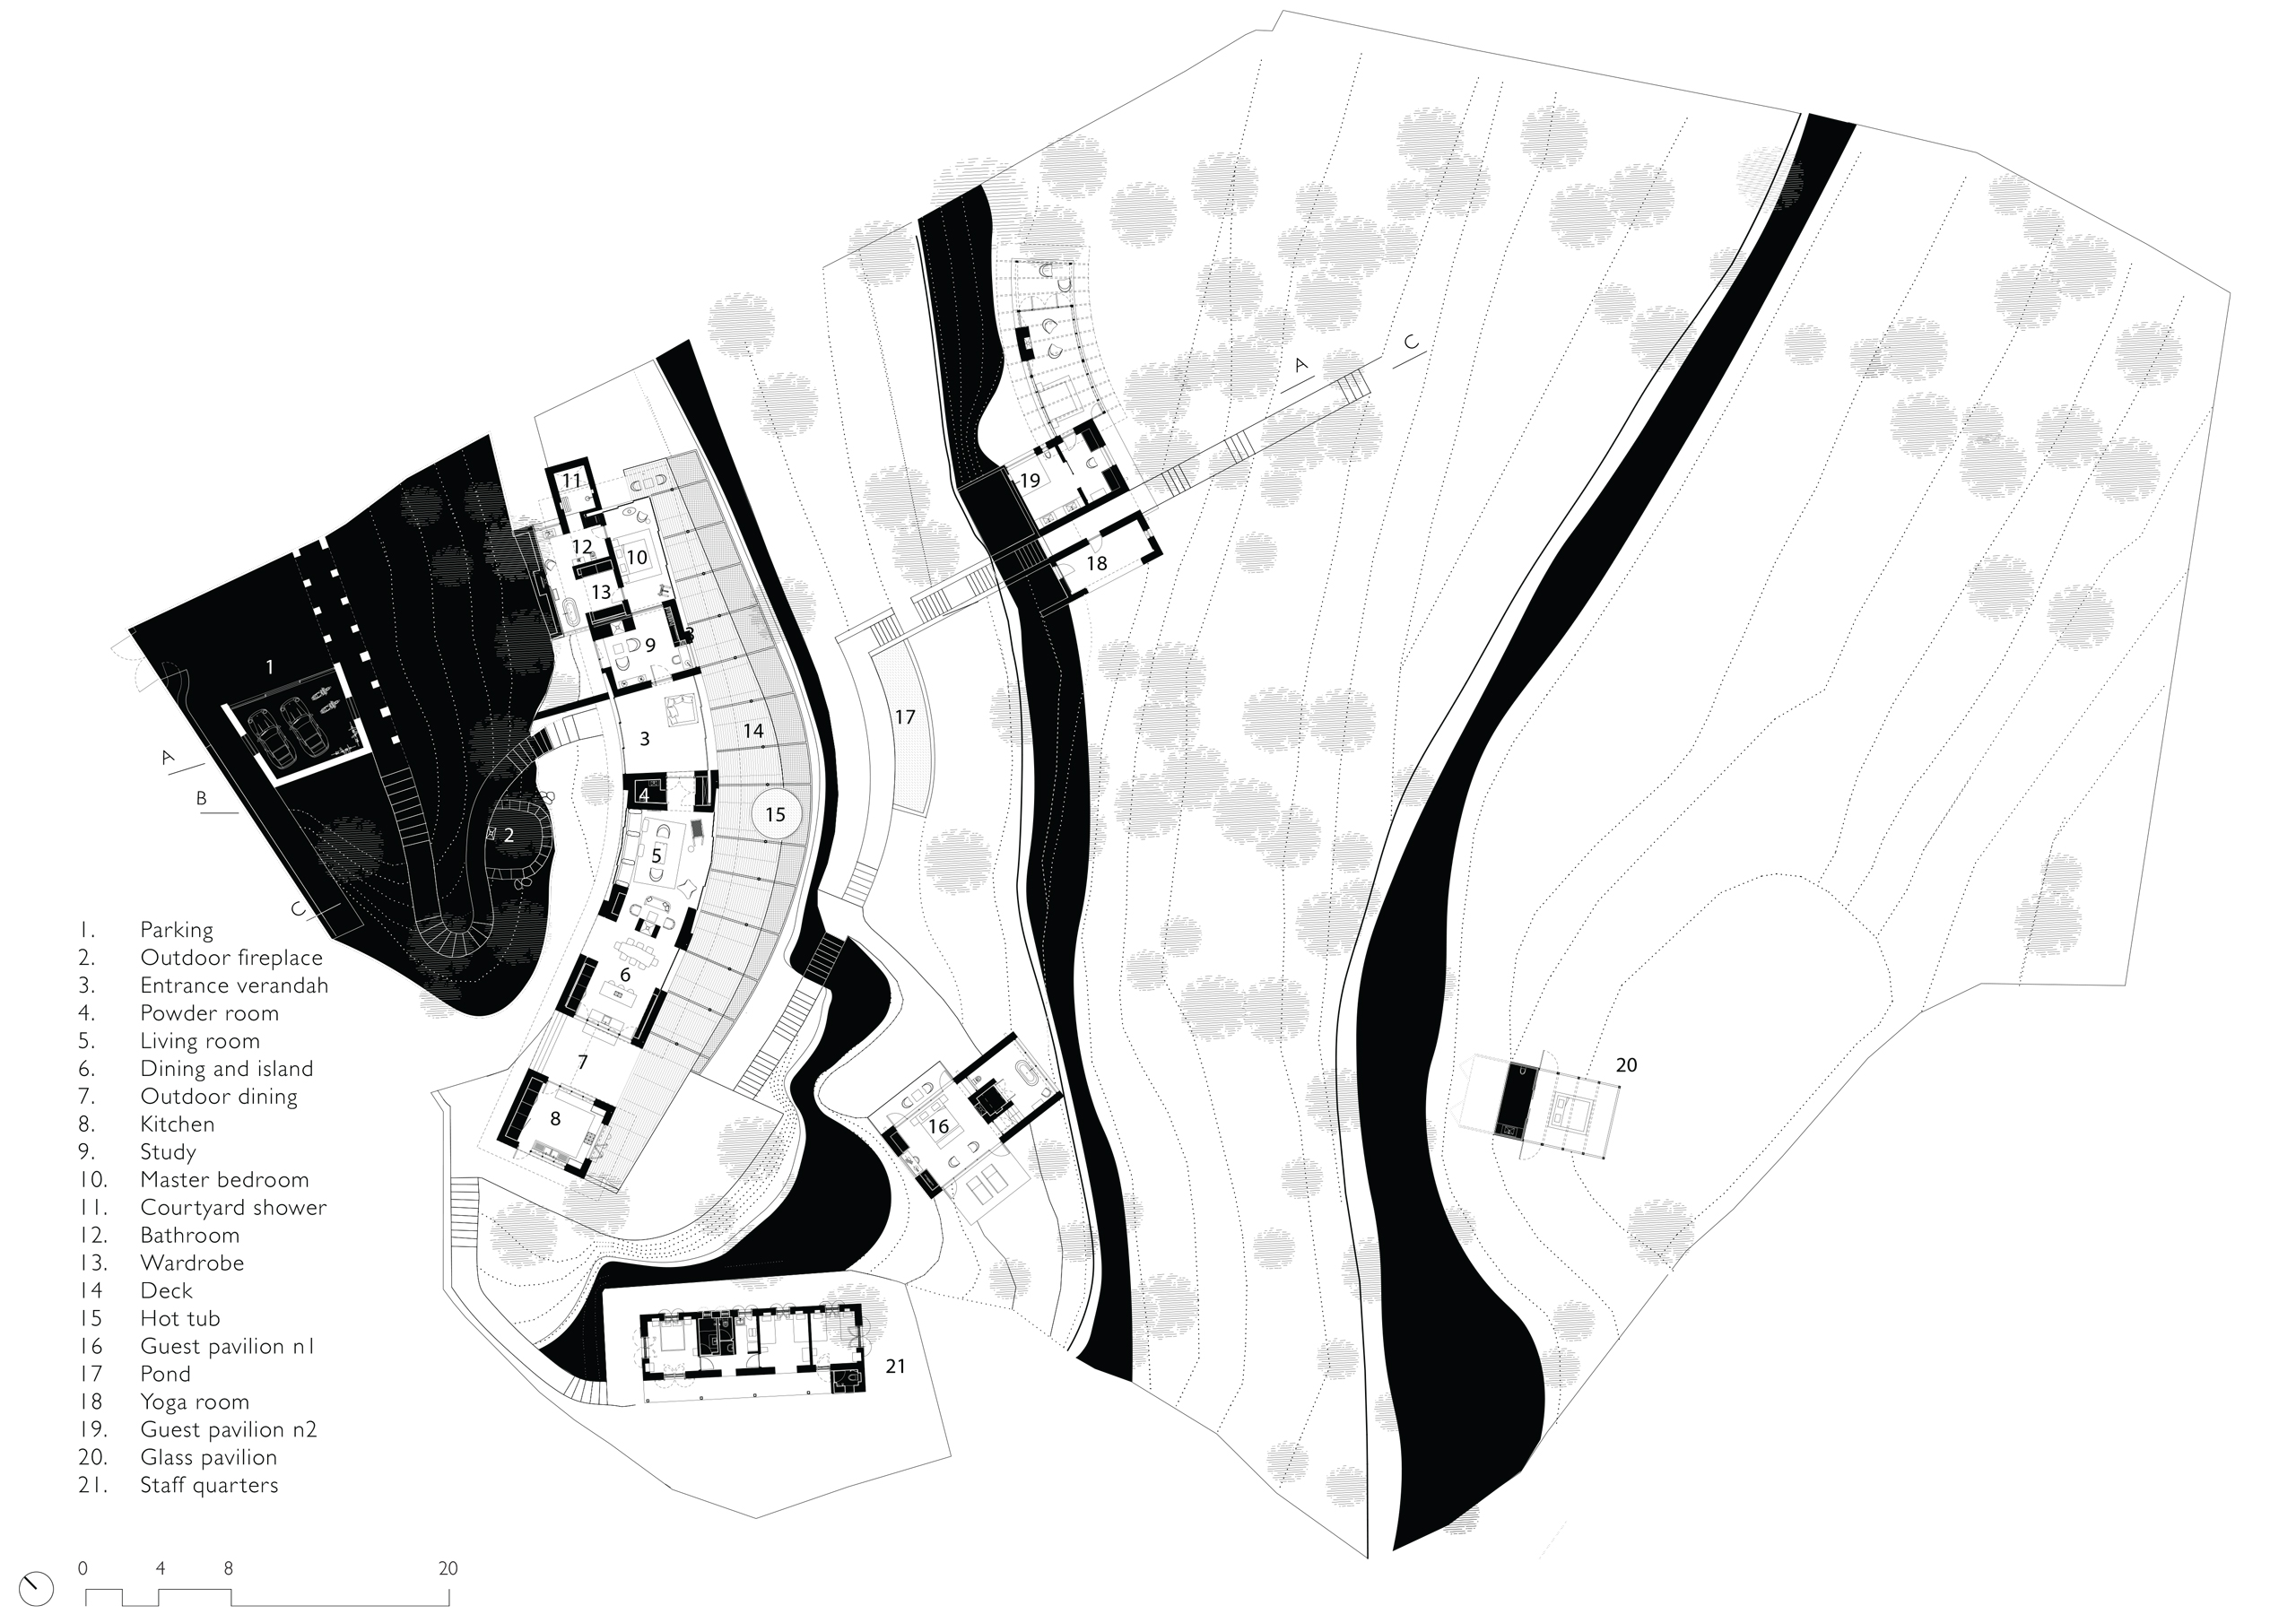 Floor Plan of Himalayan Mountain Retreat in Mukteshwar